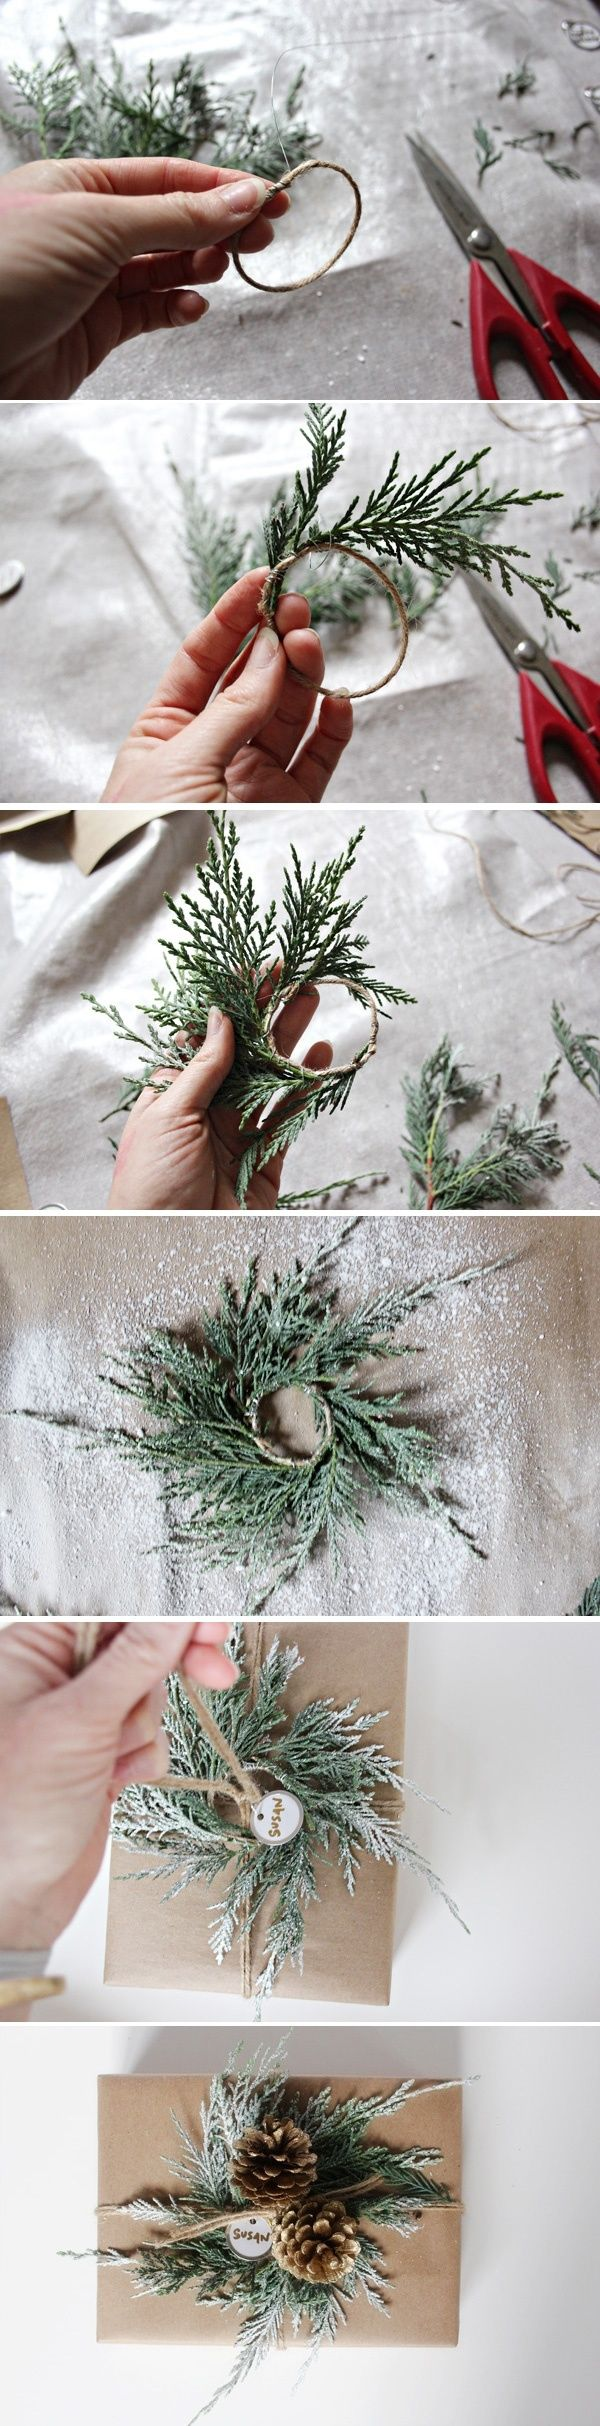 Christmas Wrapping Ideas: Adorn Your Holiday Gifts With A Cedar Mini-Wreath